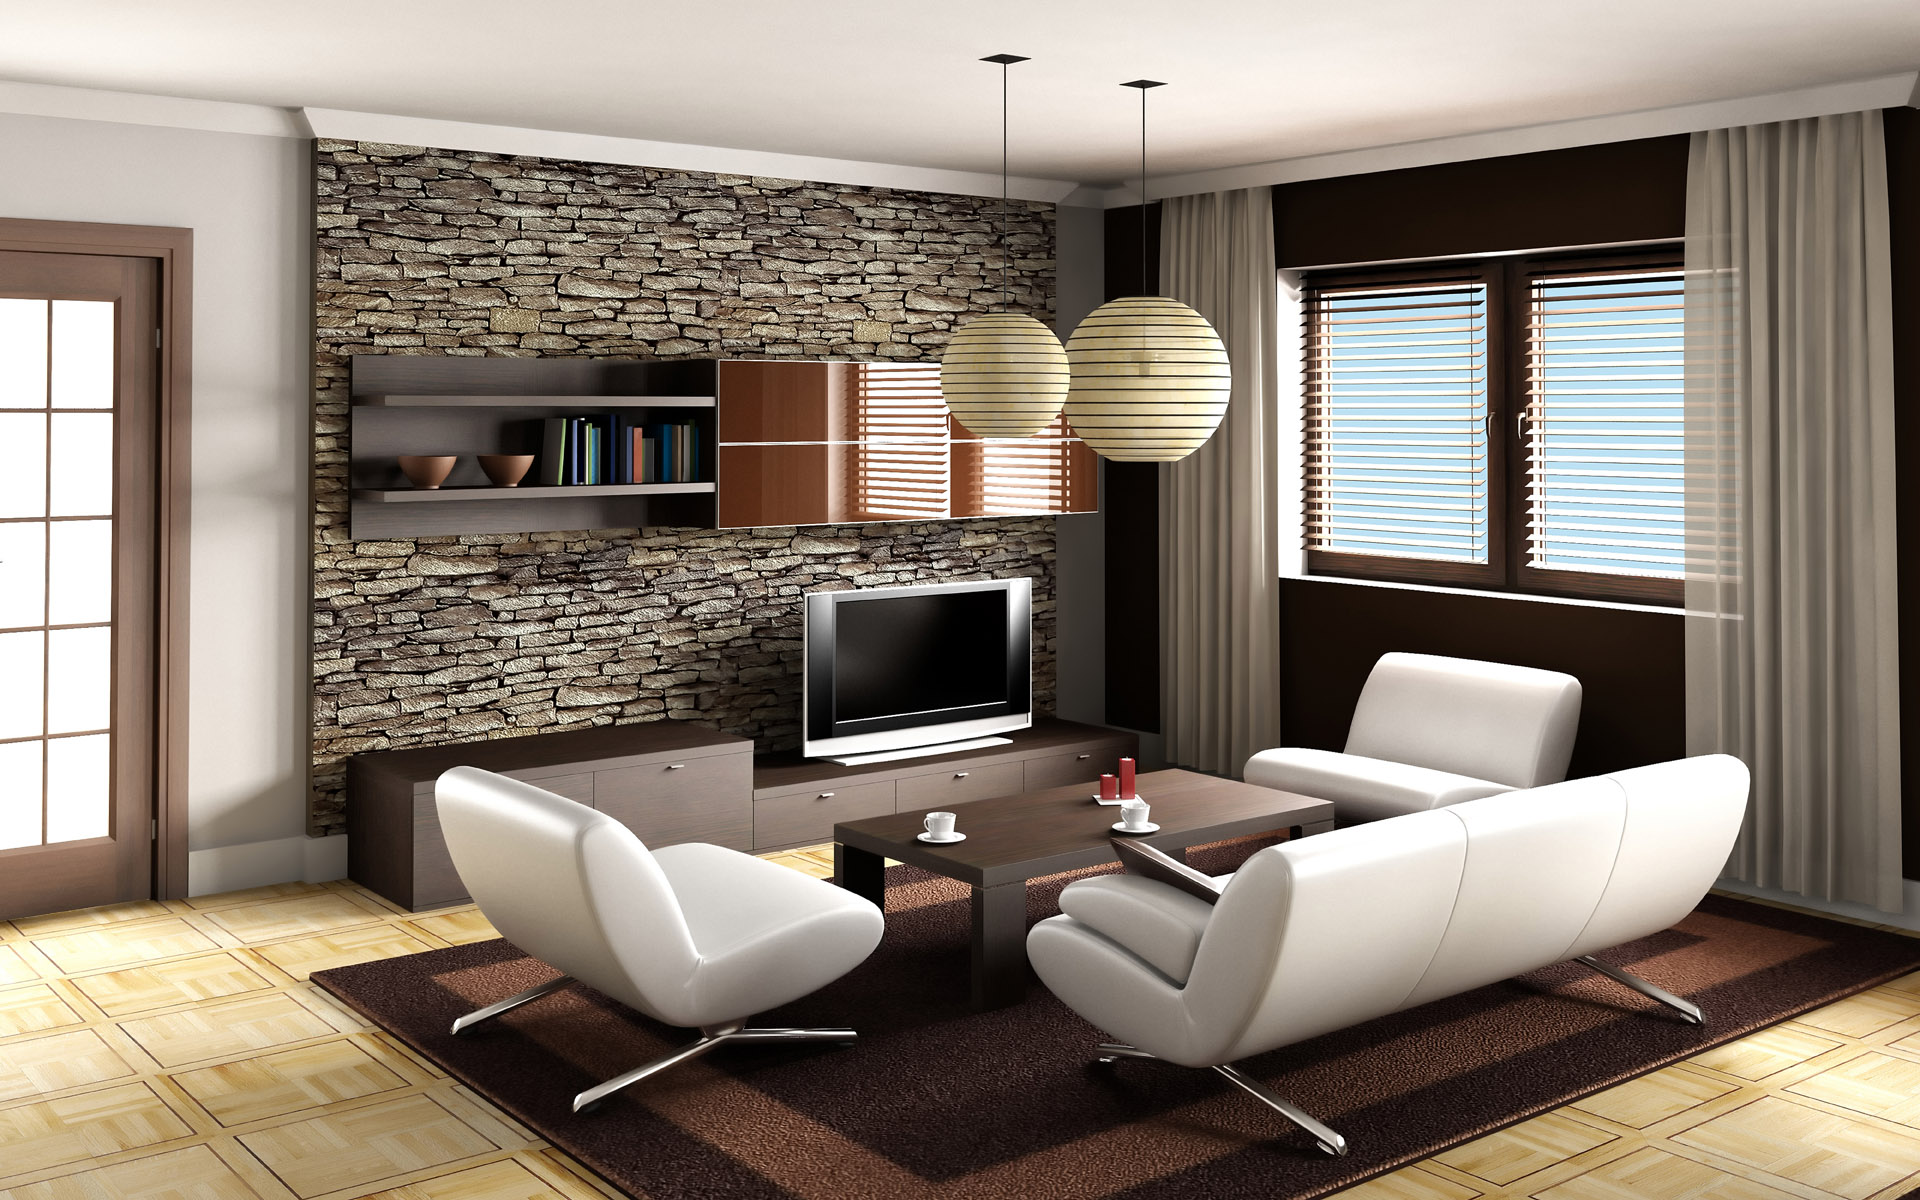 7 tips to decorate your living room worthily for Decorating your apartment